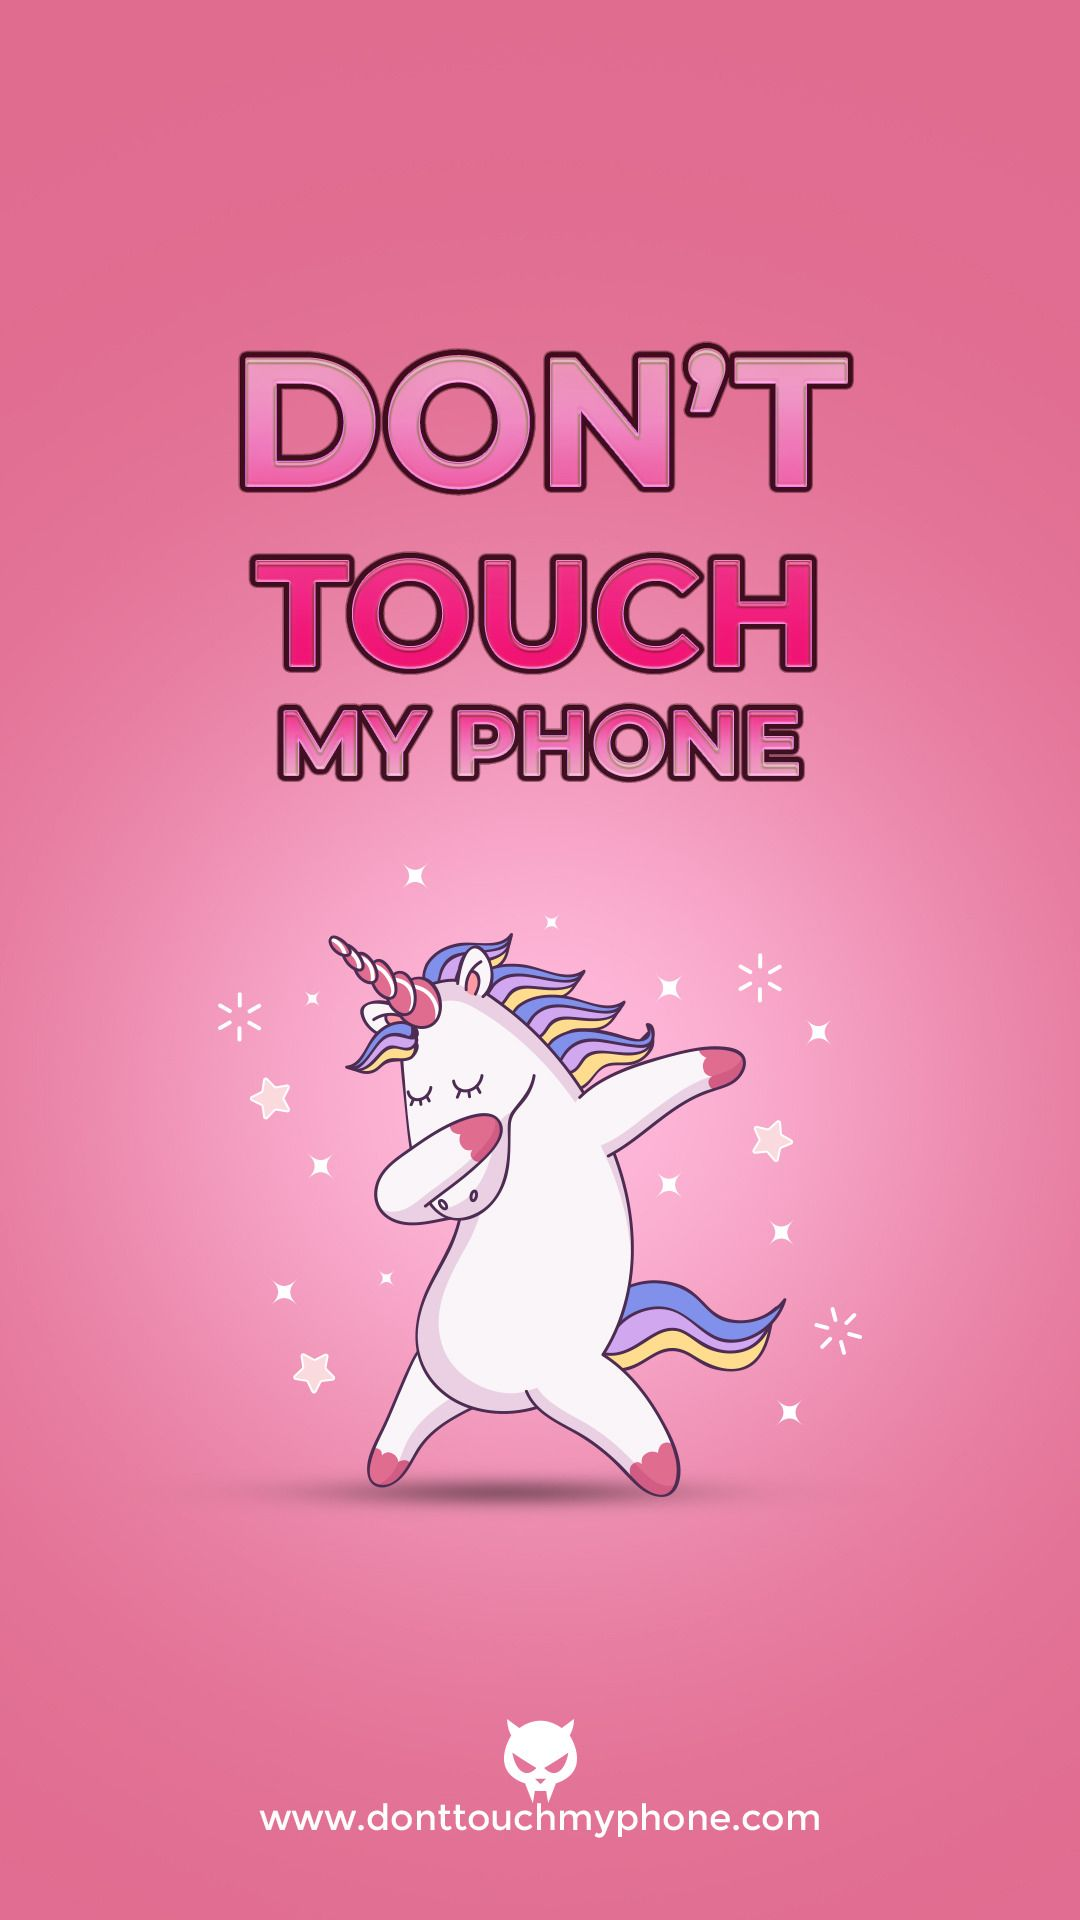 Cute Unicorn Mobile Wallpapers Cute Mobile Wallpapers Dont Touch My Phone Wallpapers Phone Wallpaper Pink